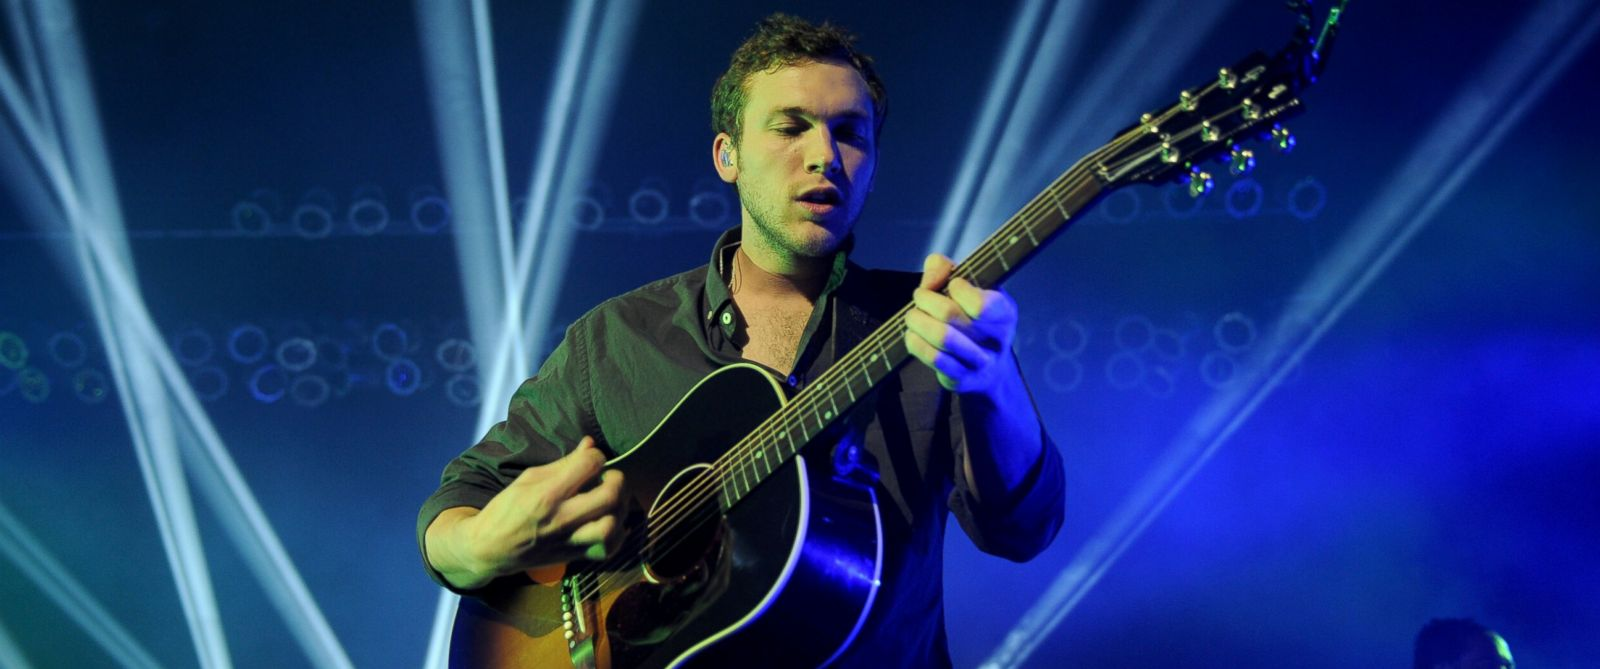 PHOTO: Phillip Phillips performs at Hard Rock Live! in the Seminole Hard Rock Hotel & Casino, Nov. 15, 2014 in Hollywood, Florida.